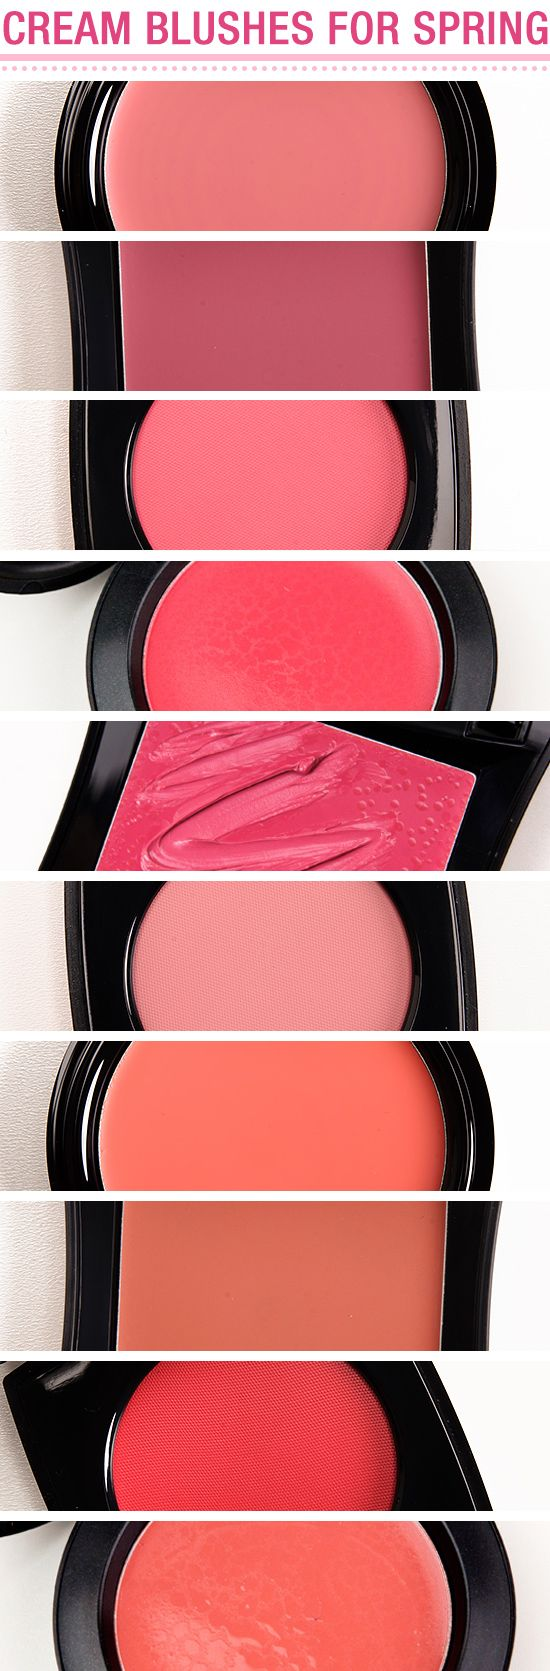 10 Cream Blushes to Try this Spring